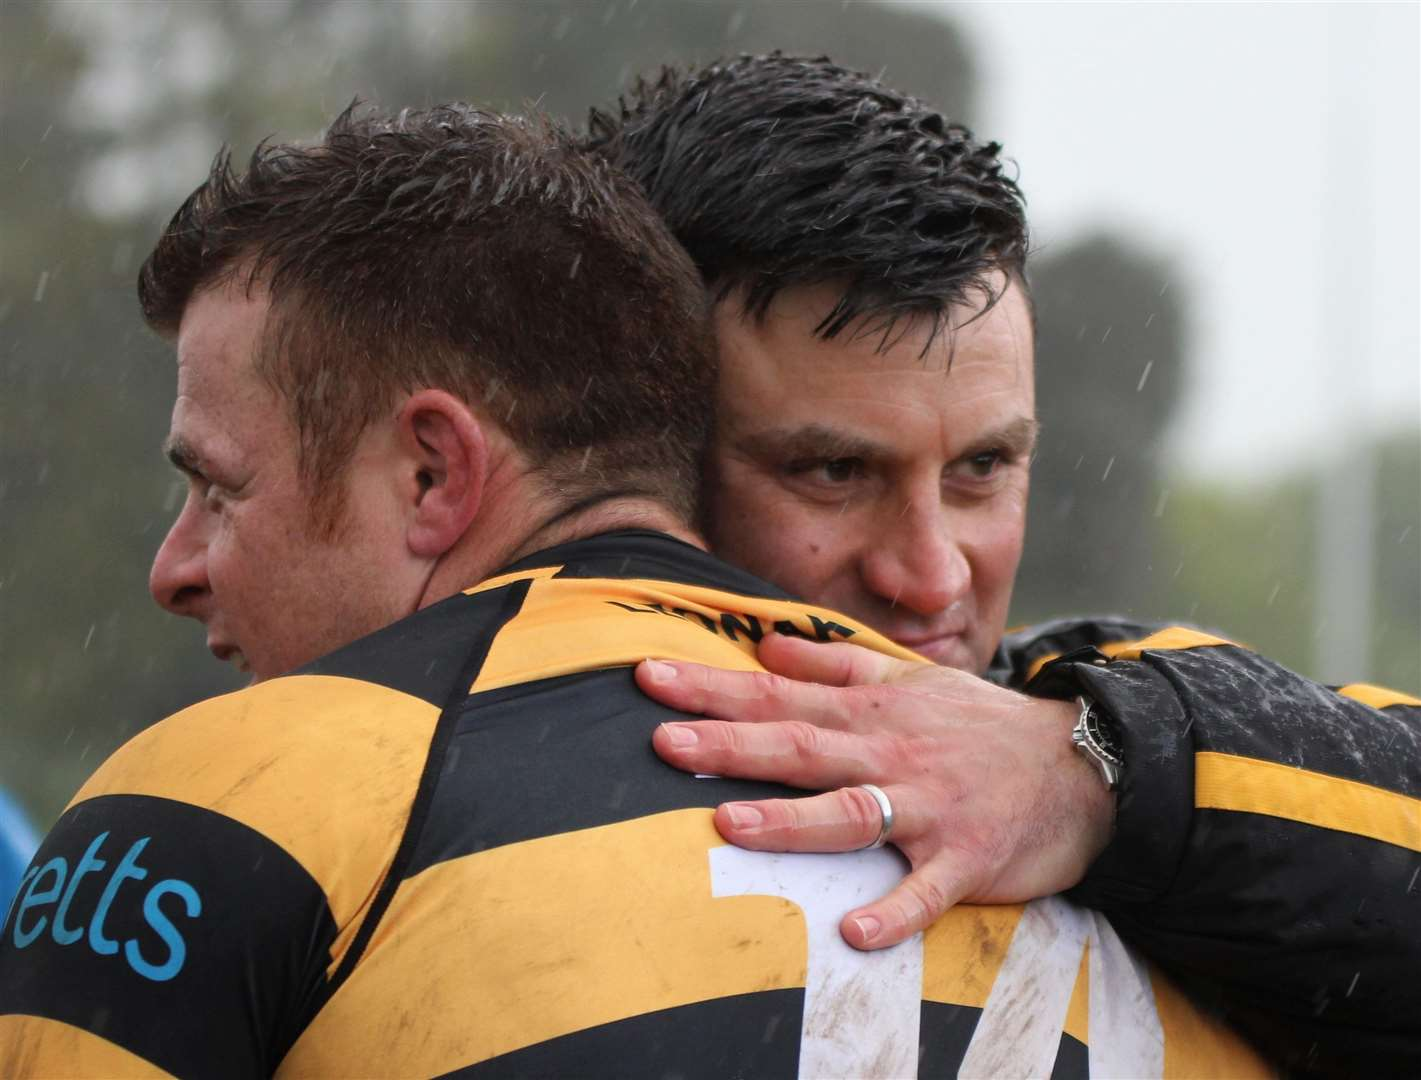 Canterbury's head of rugby Andy Pratt celebrates the play-off win over Chester with Ricky Mackintosh Picture: Phillipa Hilton